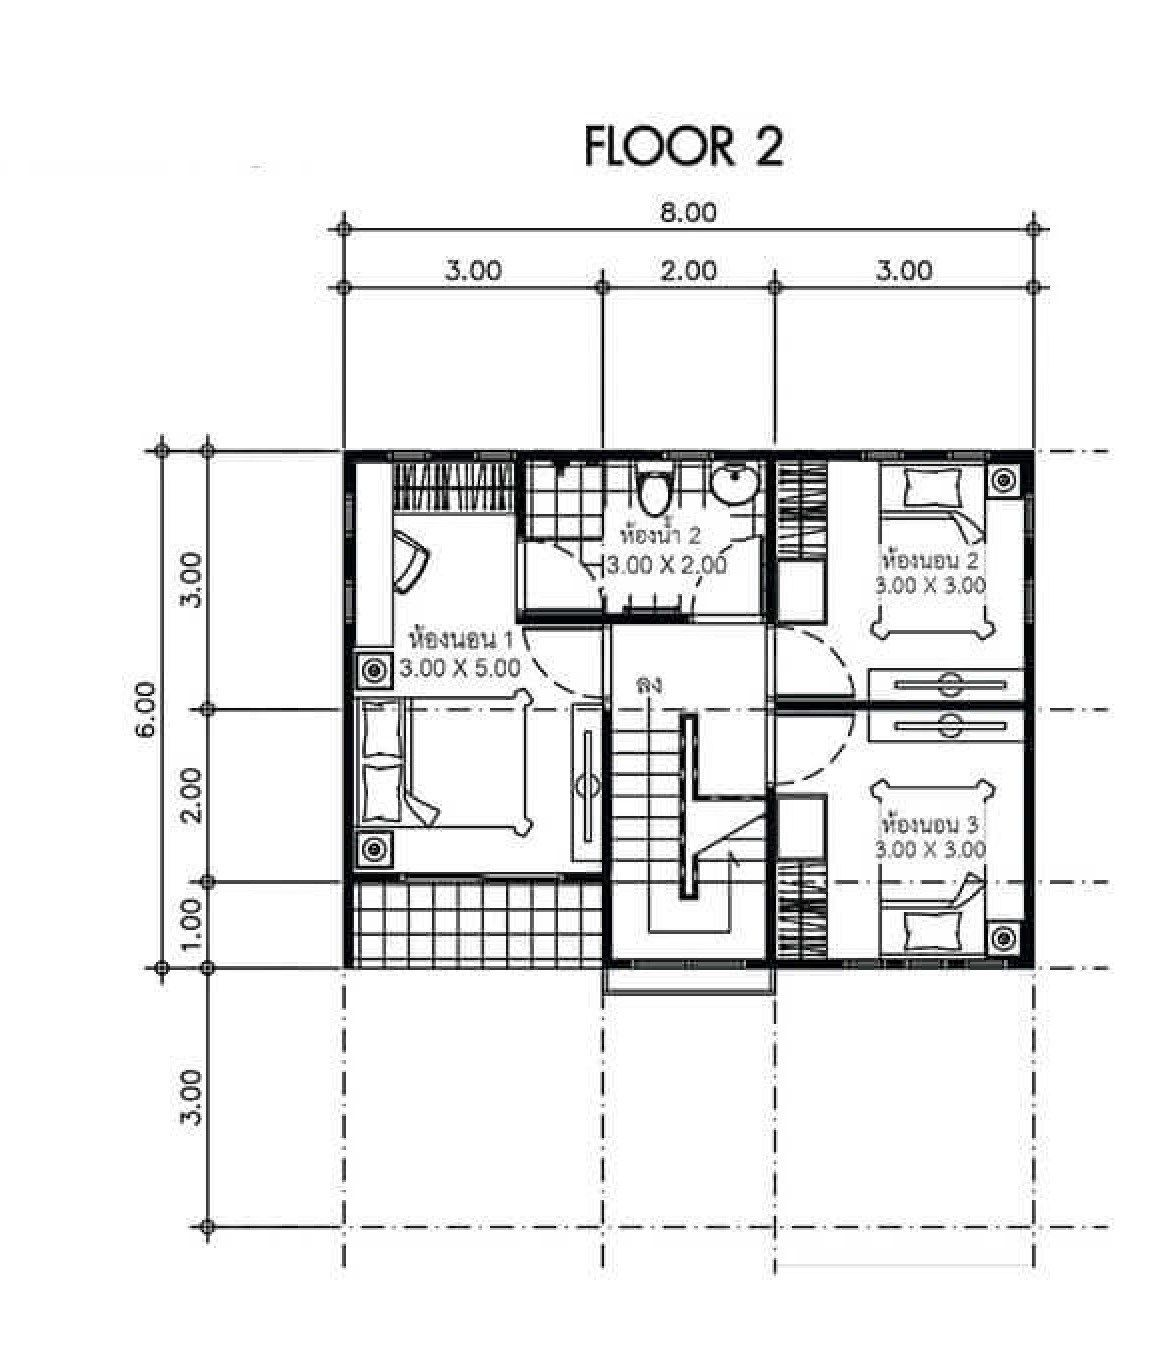 House Plans Idea 8x6 With 3 Bedrooms Sam House Plans House Plans Small Modern House Plans House